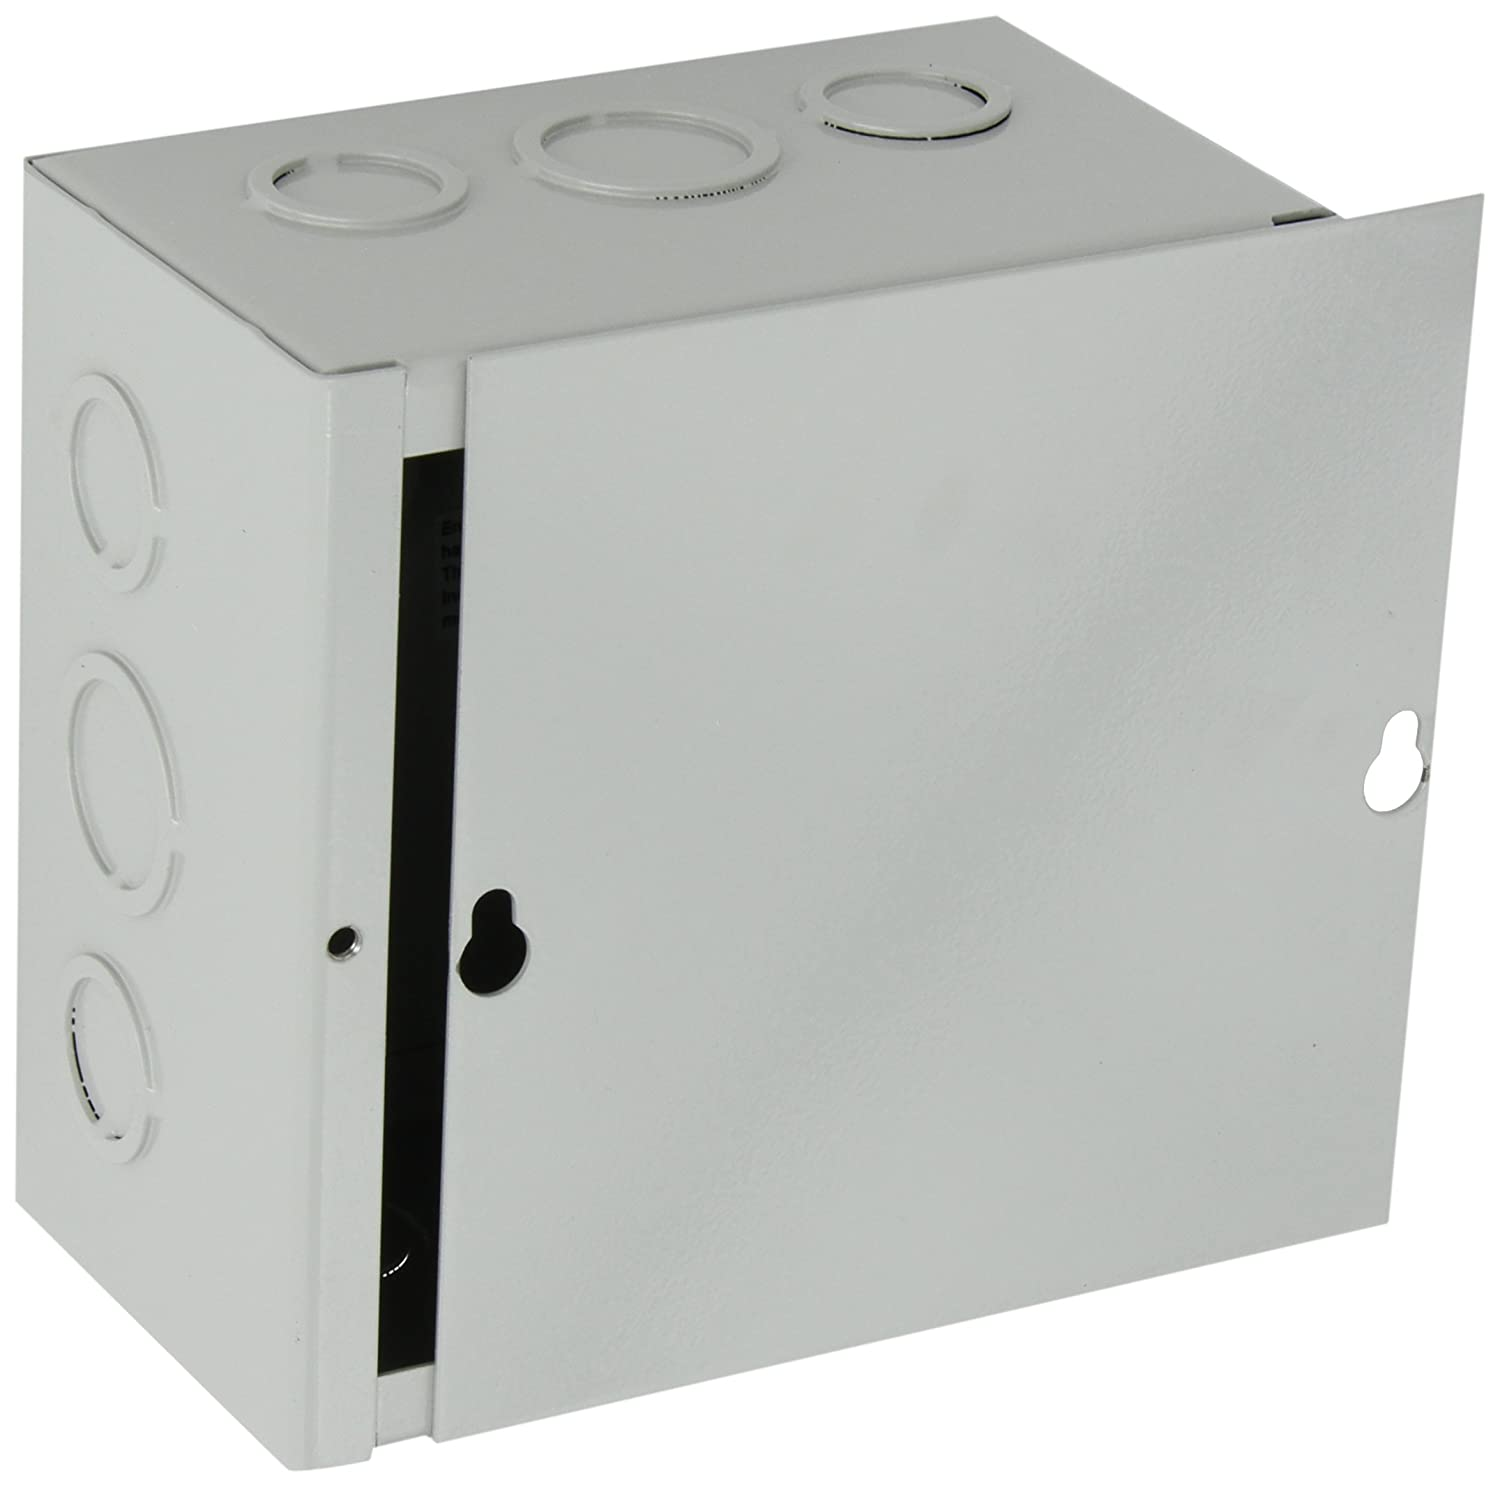 BUD Industries JB 3945 KO Steel NEMA 1 Sheet Metal Junction Box with Knockout and Lift off Screw Cover 6 Width x 6 Height x 3 1 2 Depth Gray Finish